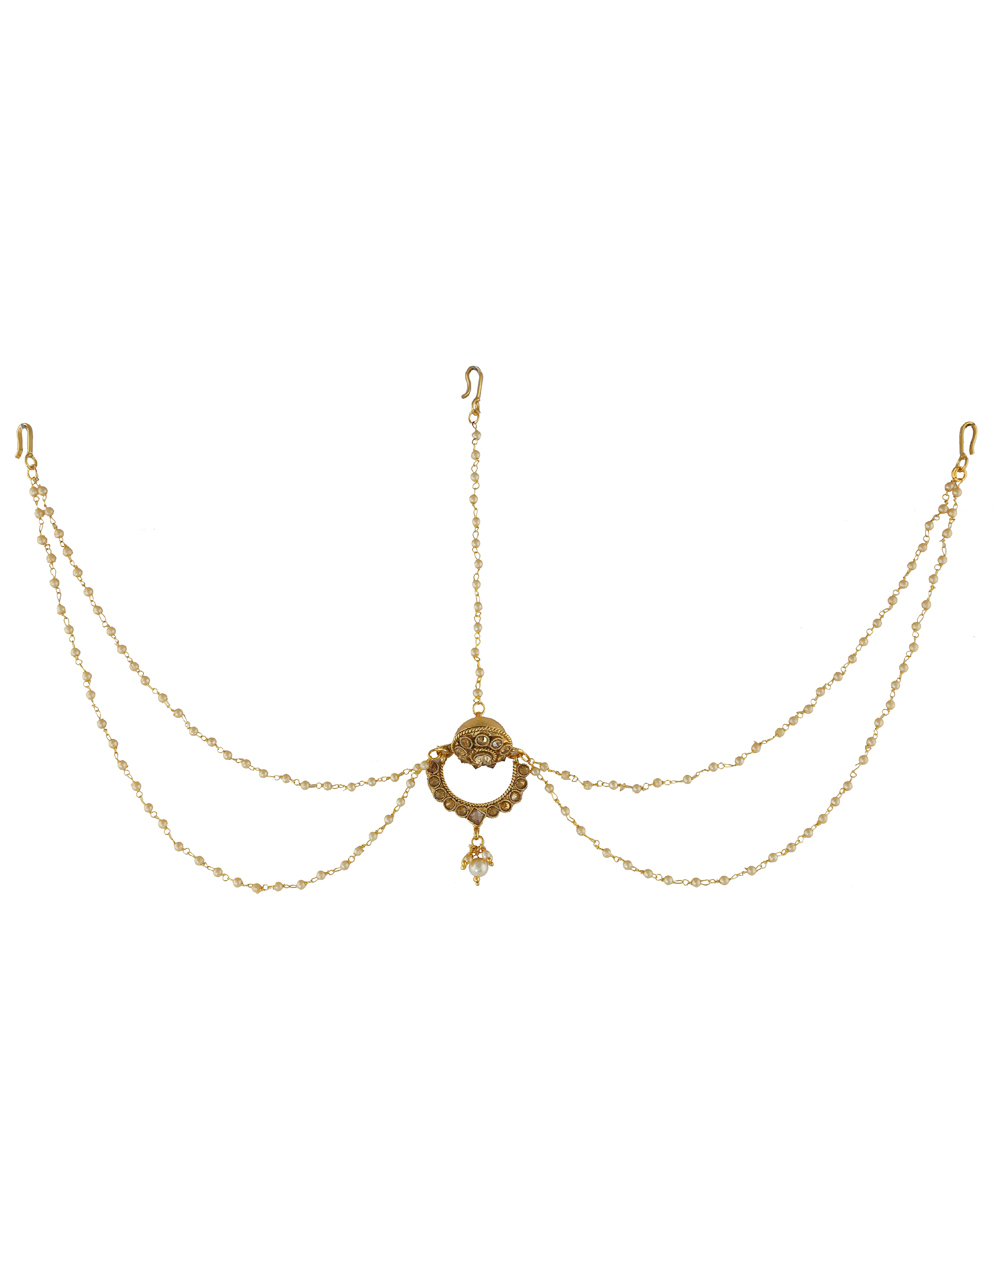 Attractive Matha Patti Design With Two Layers of Pearl String